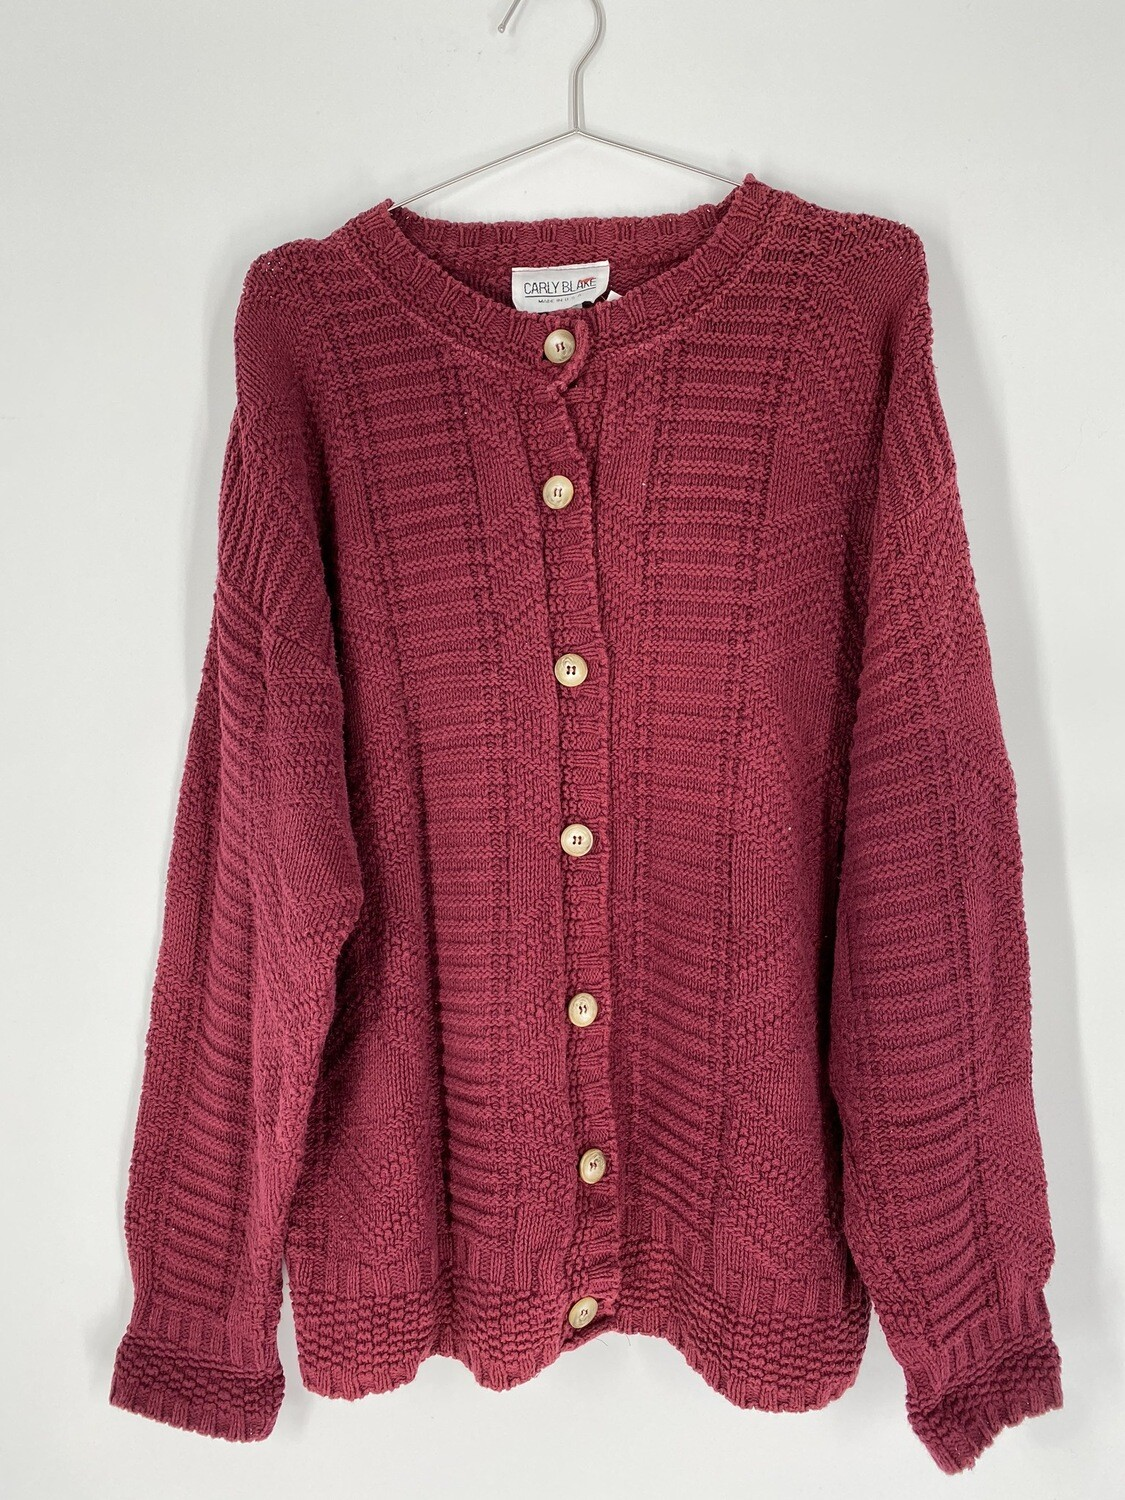 Berry Red Cardigan Size L